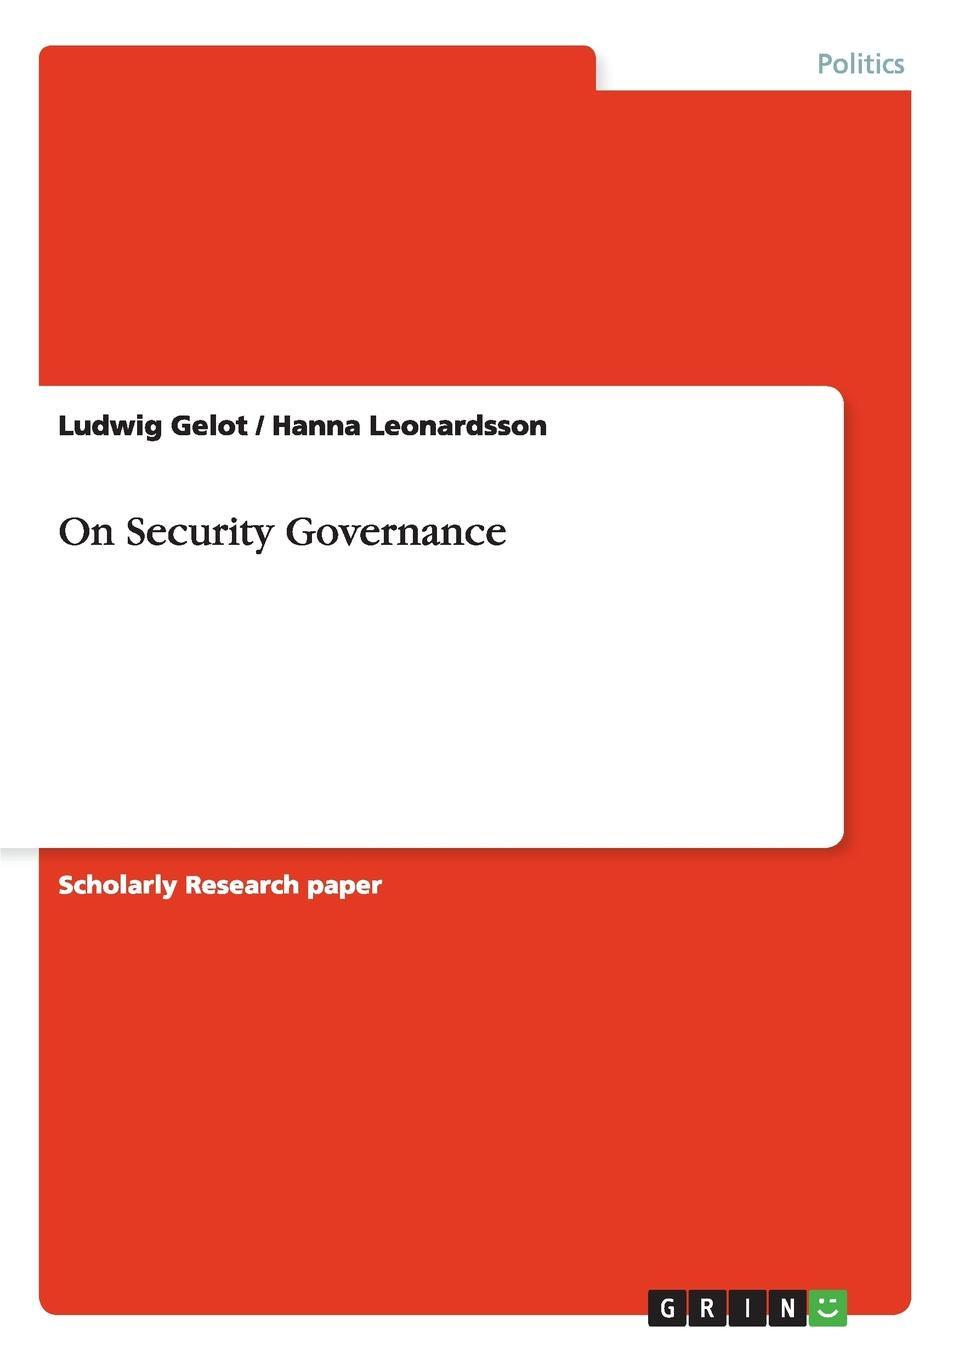 Ludwig Gelot, Hanna Leonardsson On Security Governance local remedies in international law